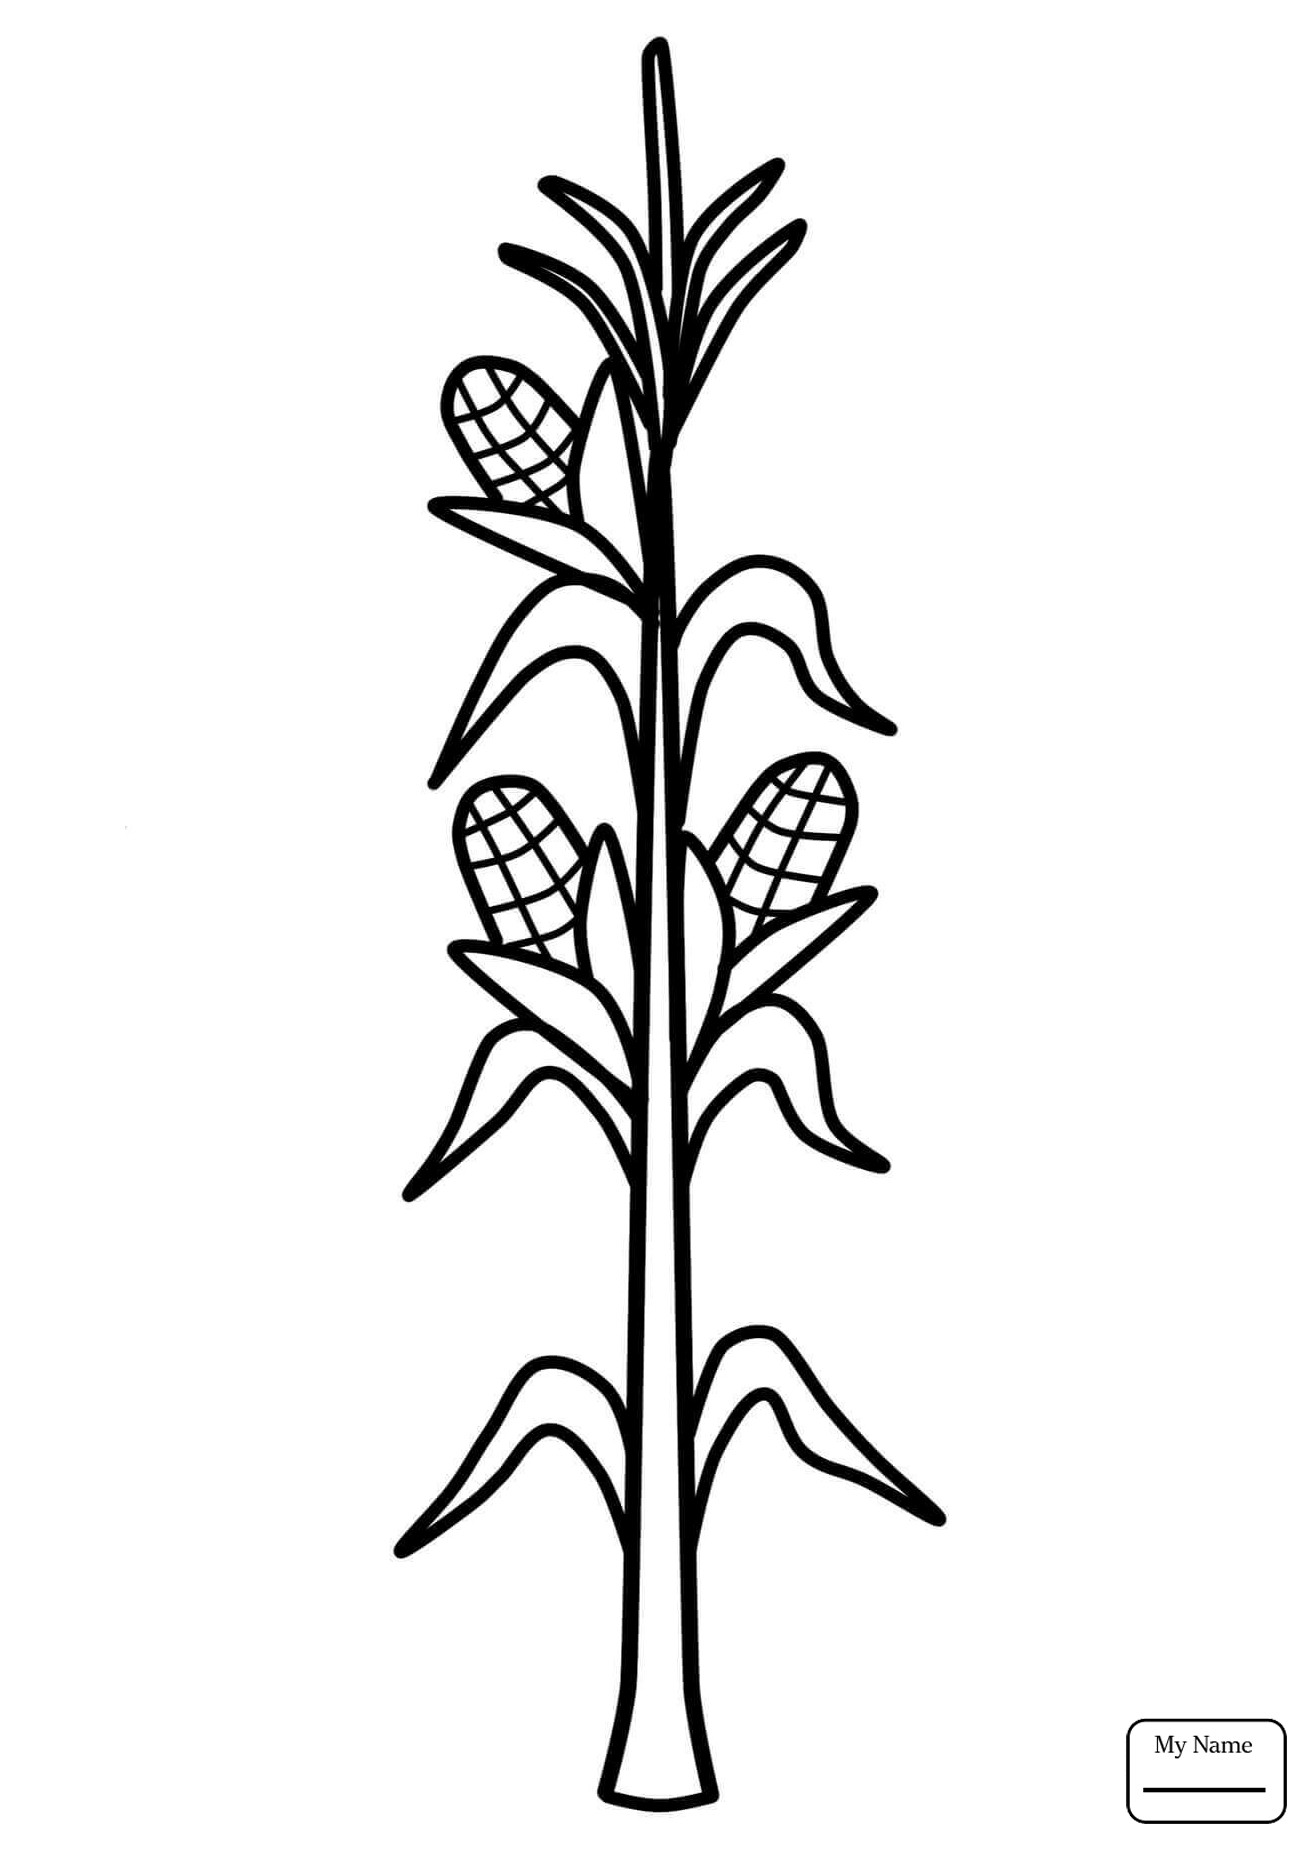 corn stalk template - corn stalk drawing at free for personal